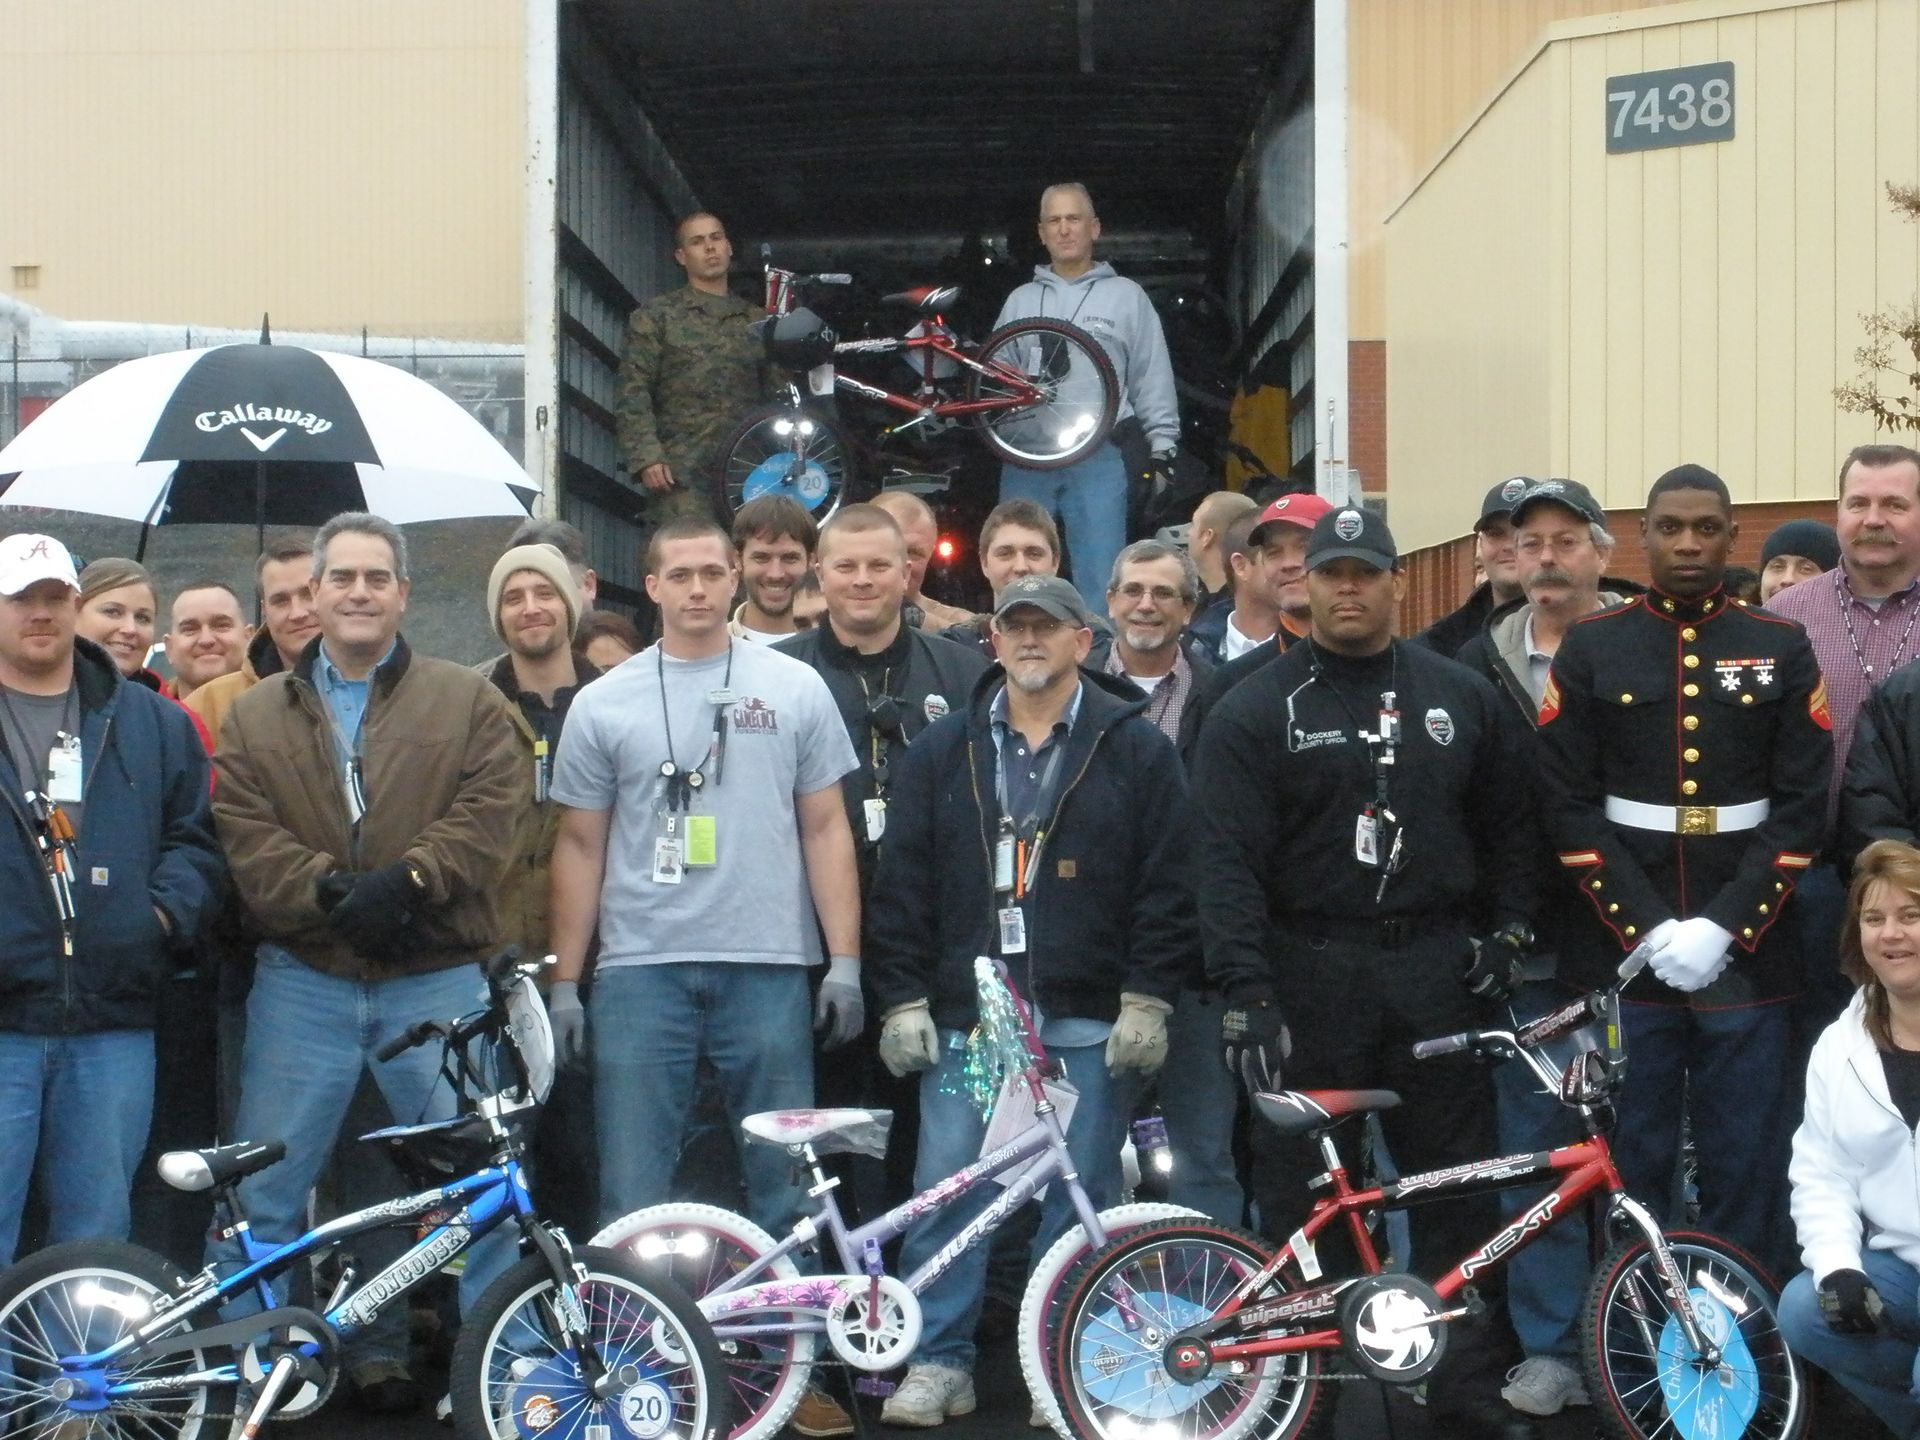 McGuire Nuclear Station employees with members of the U.S. Marine Corps for the site's annual Toys for Tots collection.